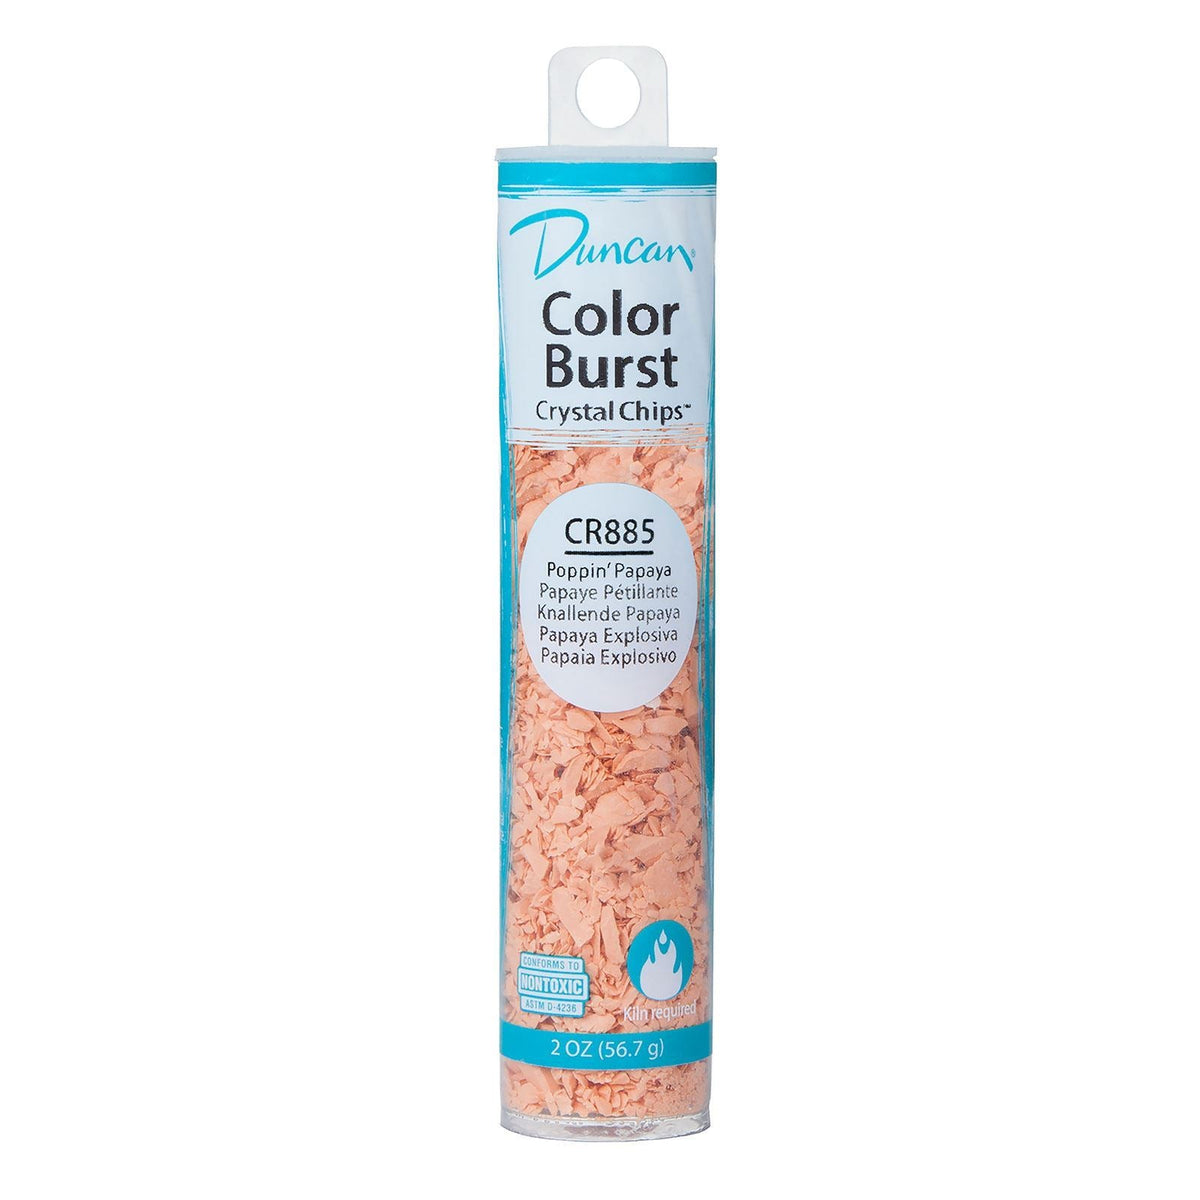 Duncan CR885 Poppin' Papaya Color Burst Crystal Chips, 2 oz.